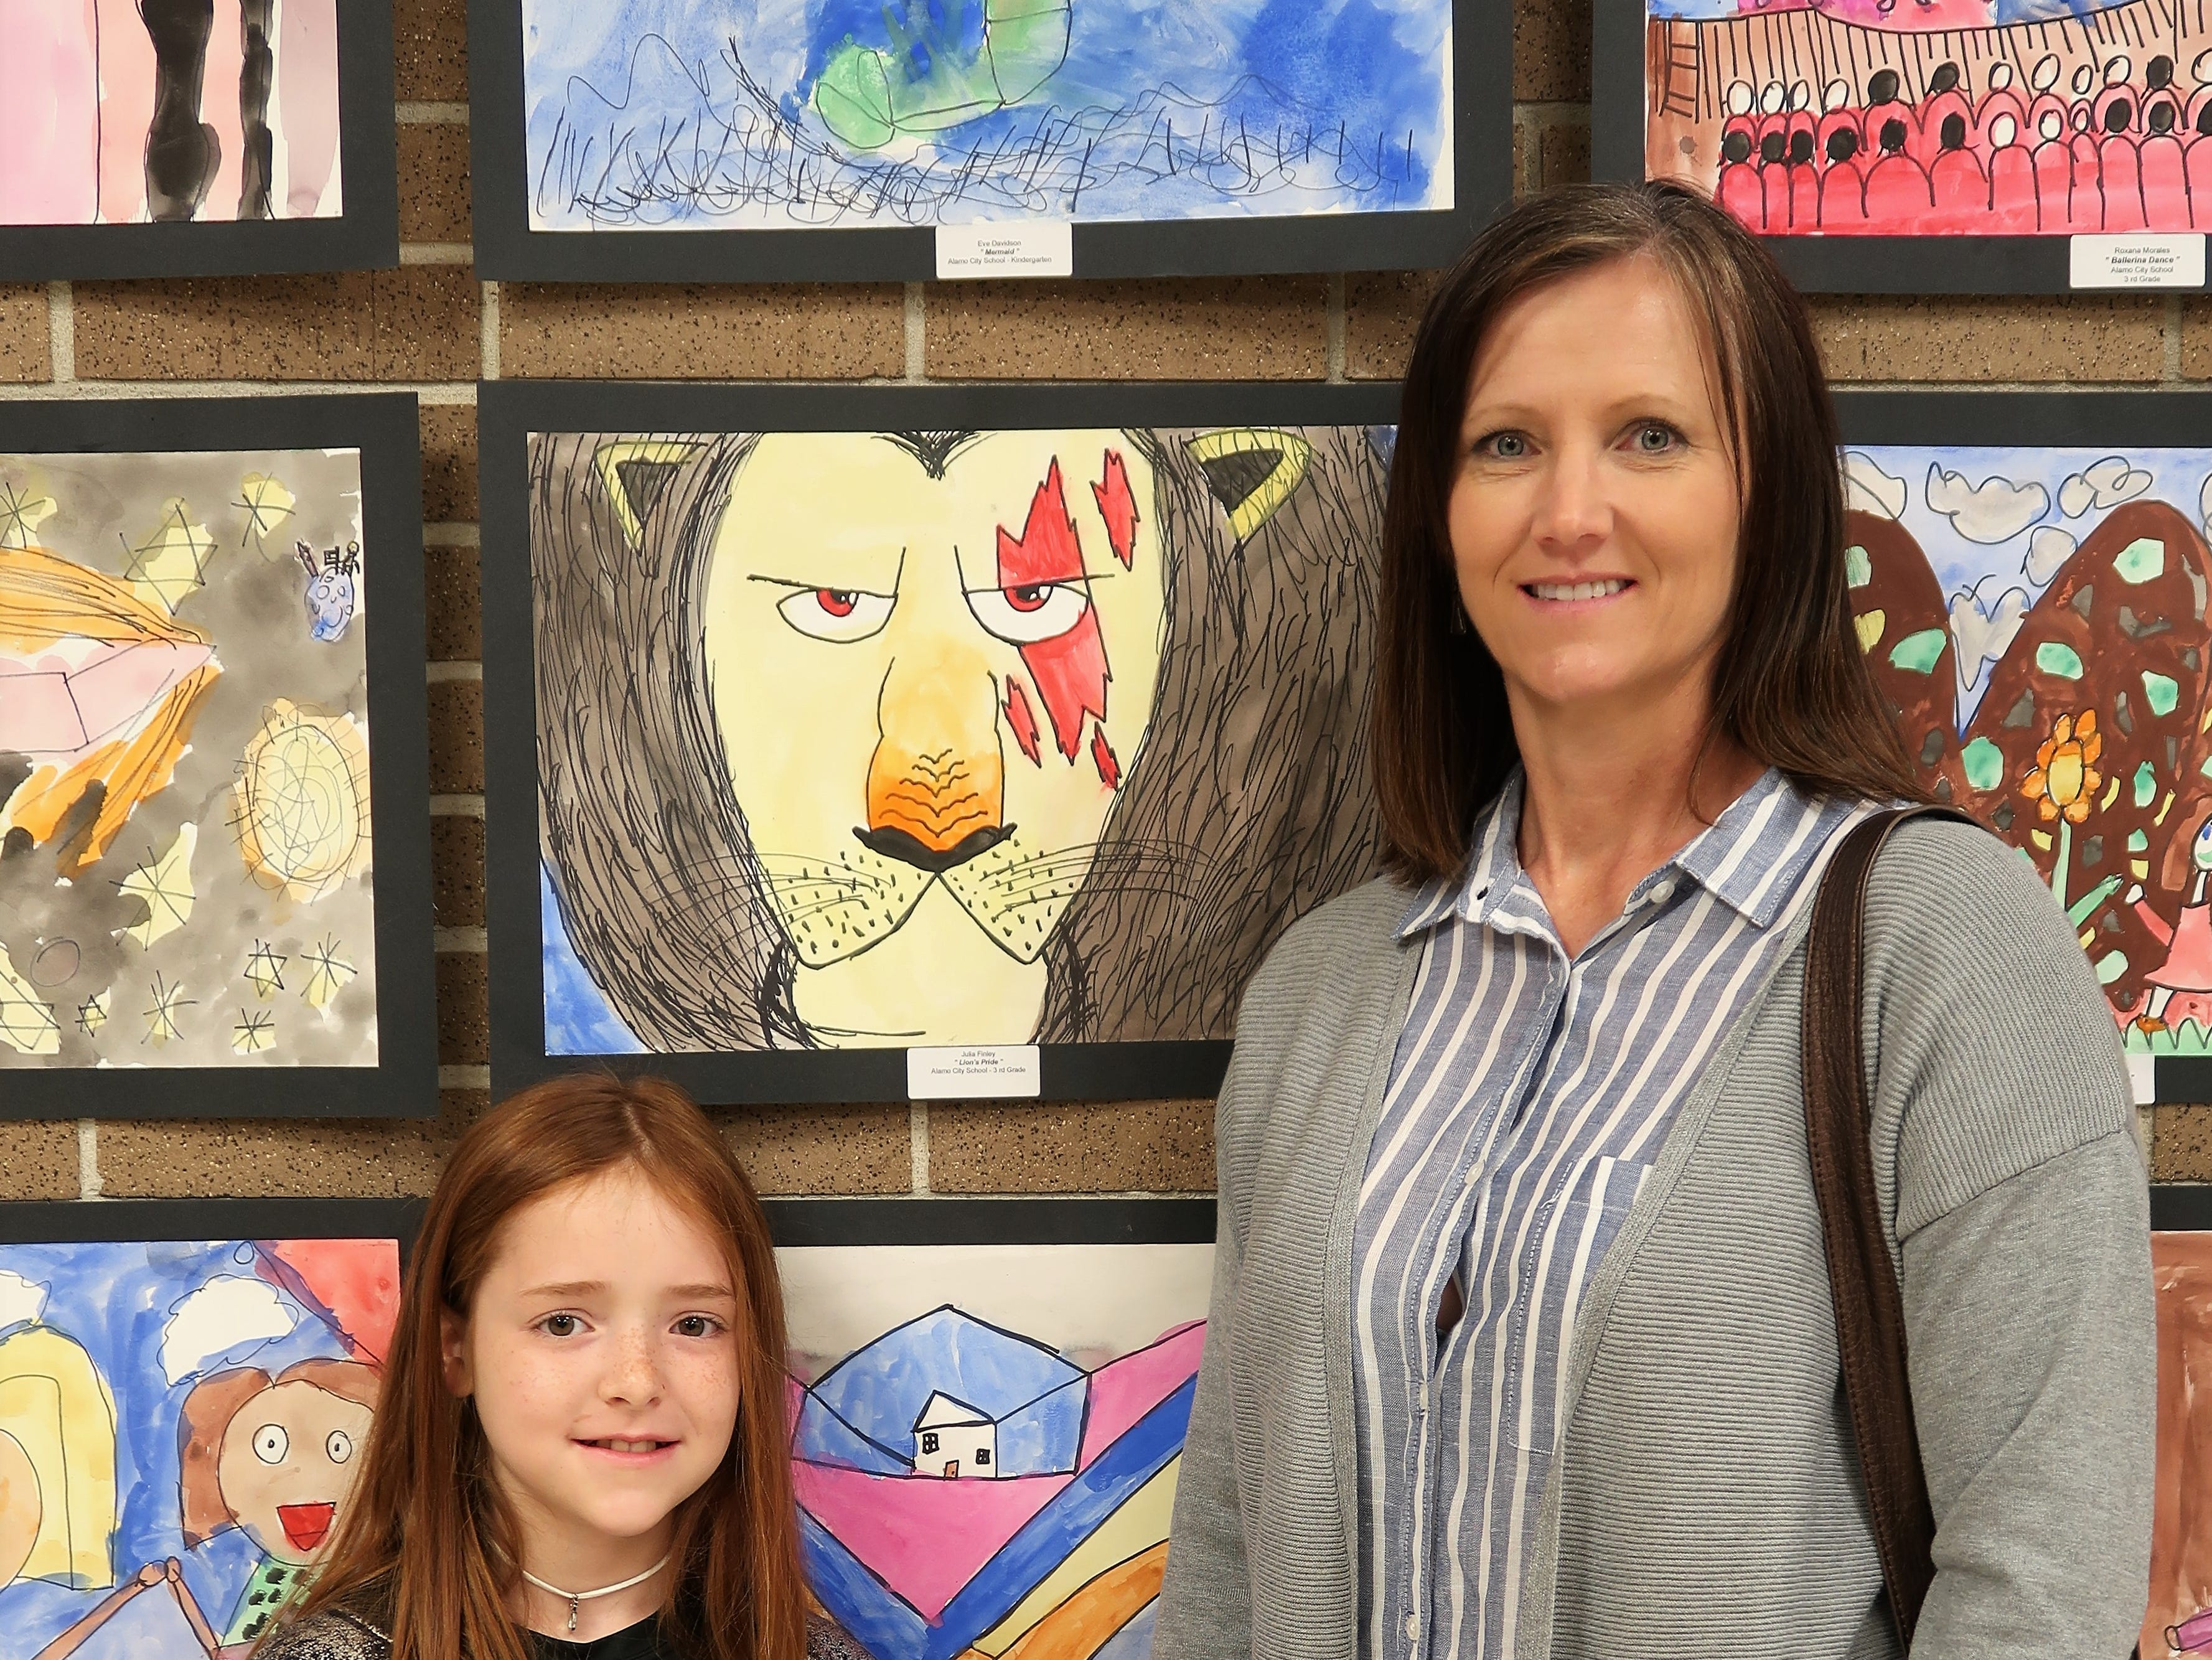 Julia Finley and Angie Smothers pose in front of student artwork at the 2019 Color of Music awards at the Carl Perkins Civic Center in Jackson on Saturday, April 13.